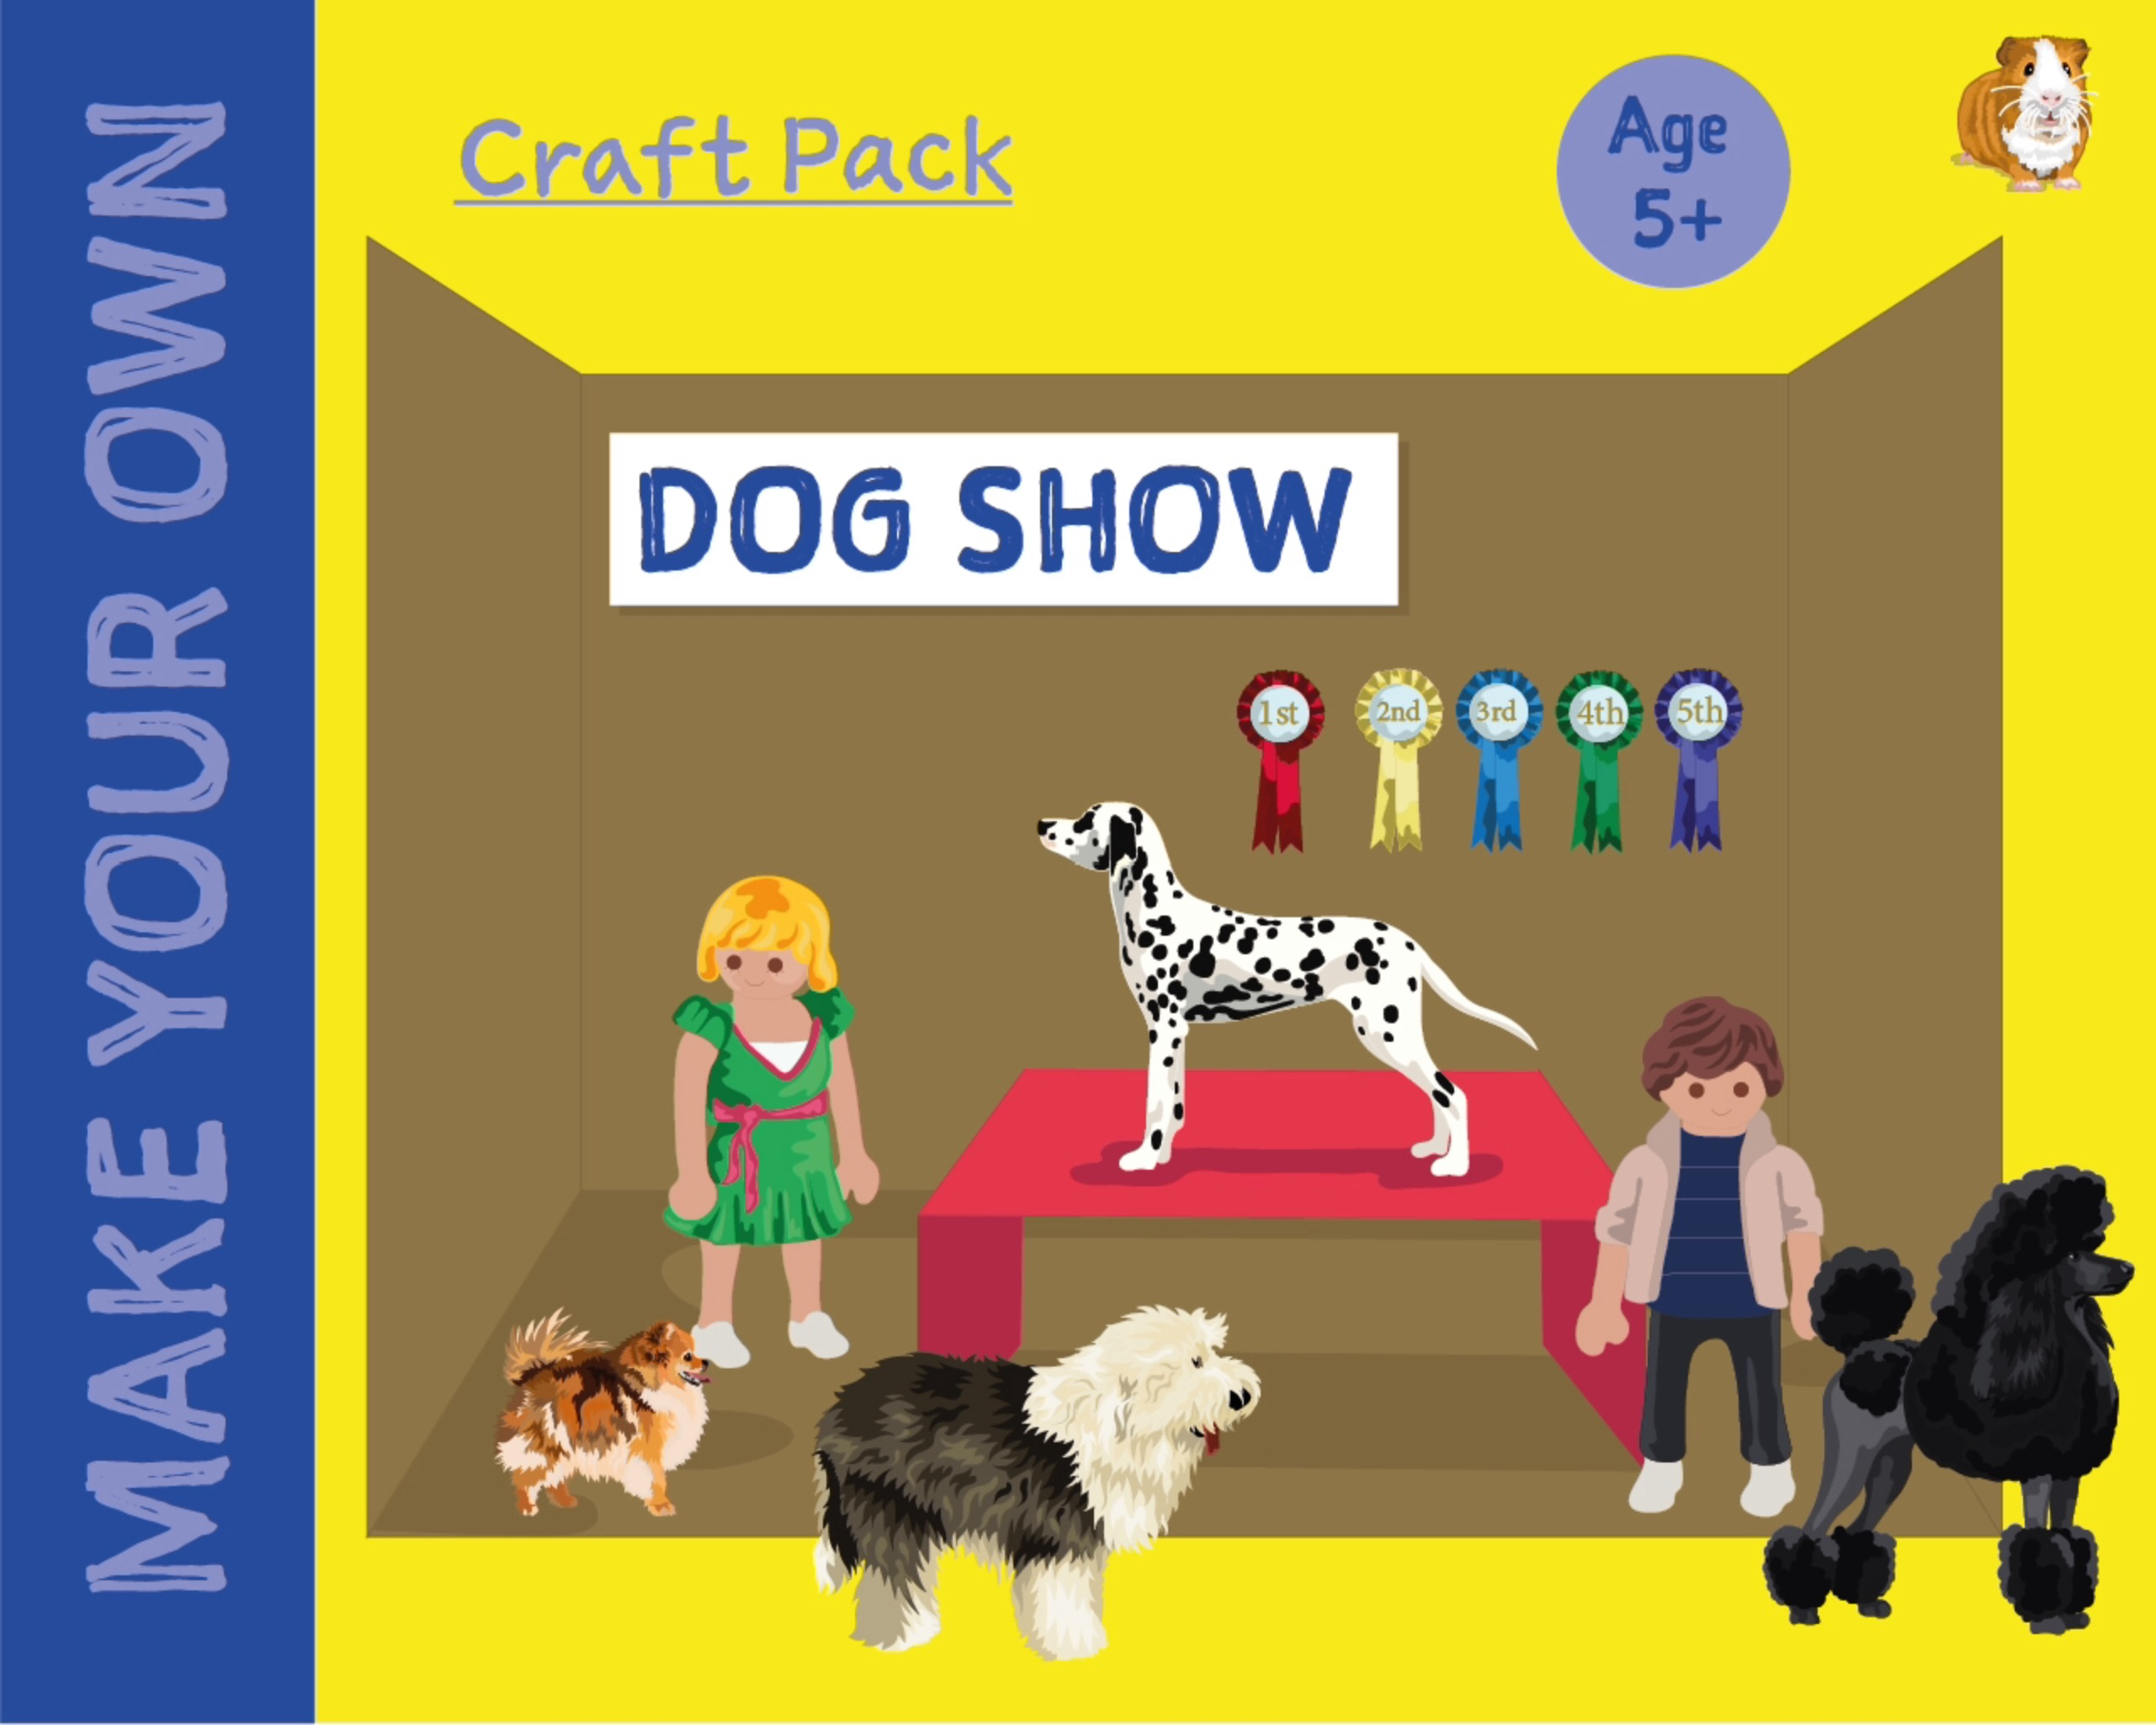 Craft Pack: Make A Dog Show (4 years +)